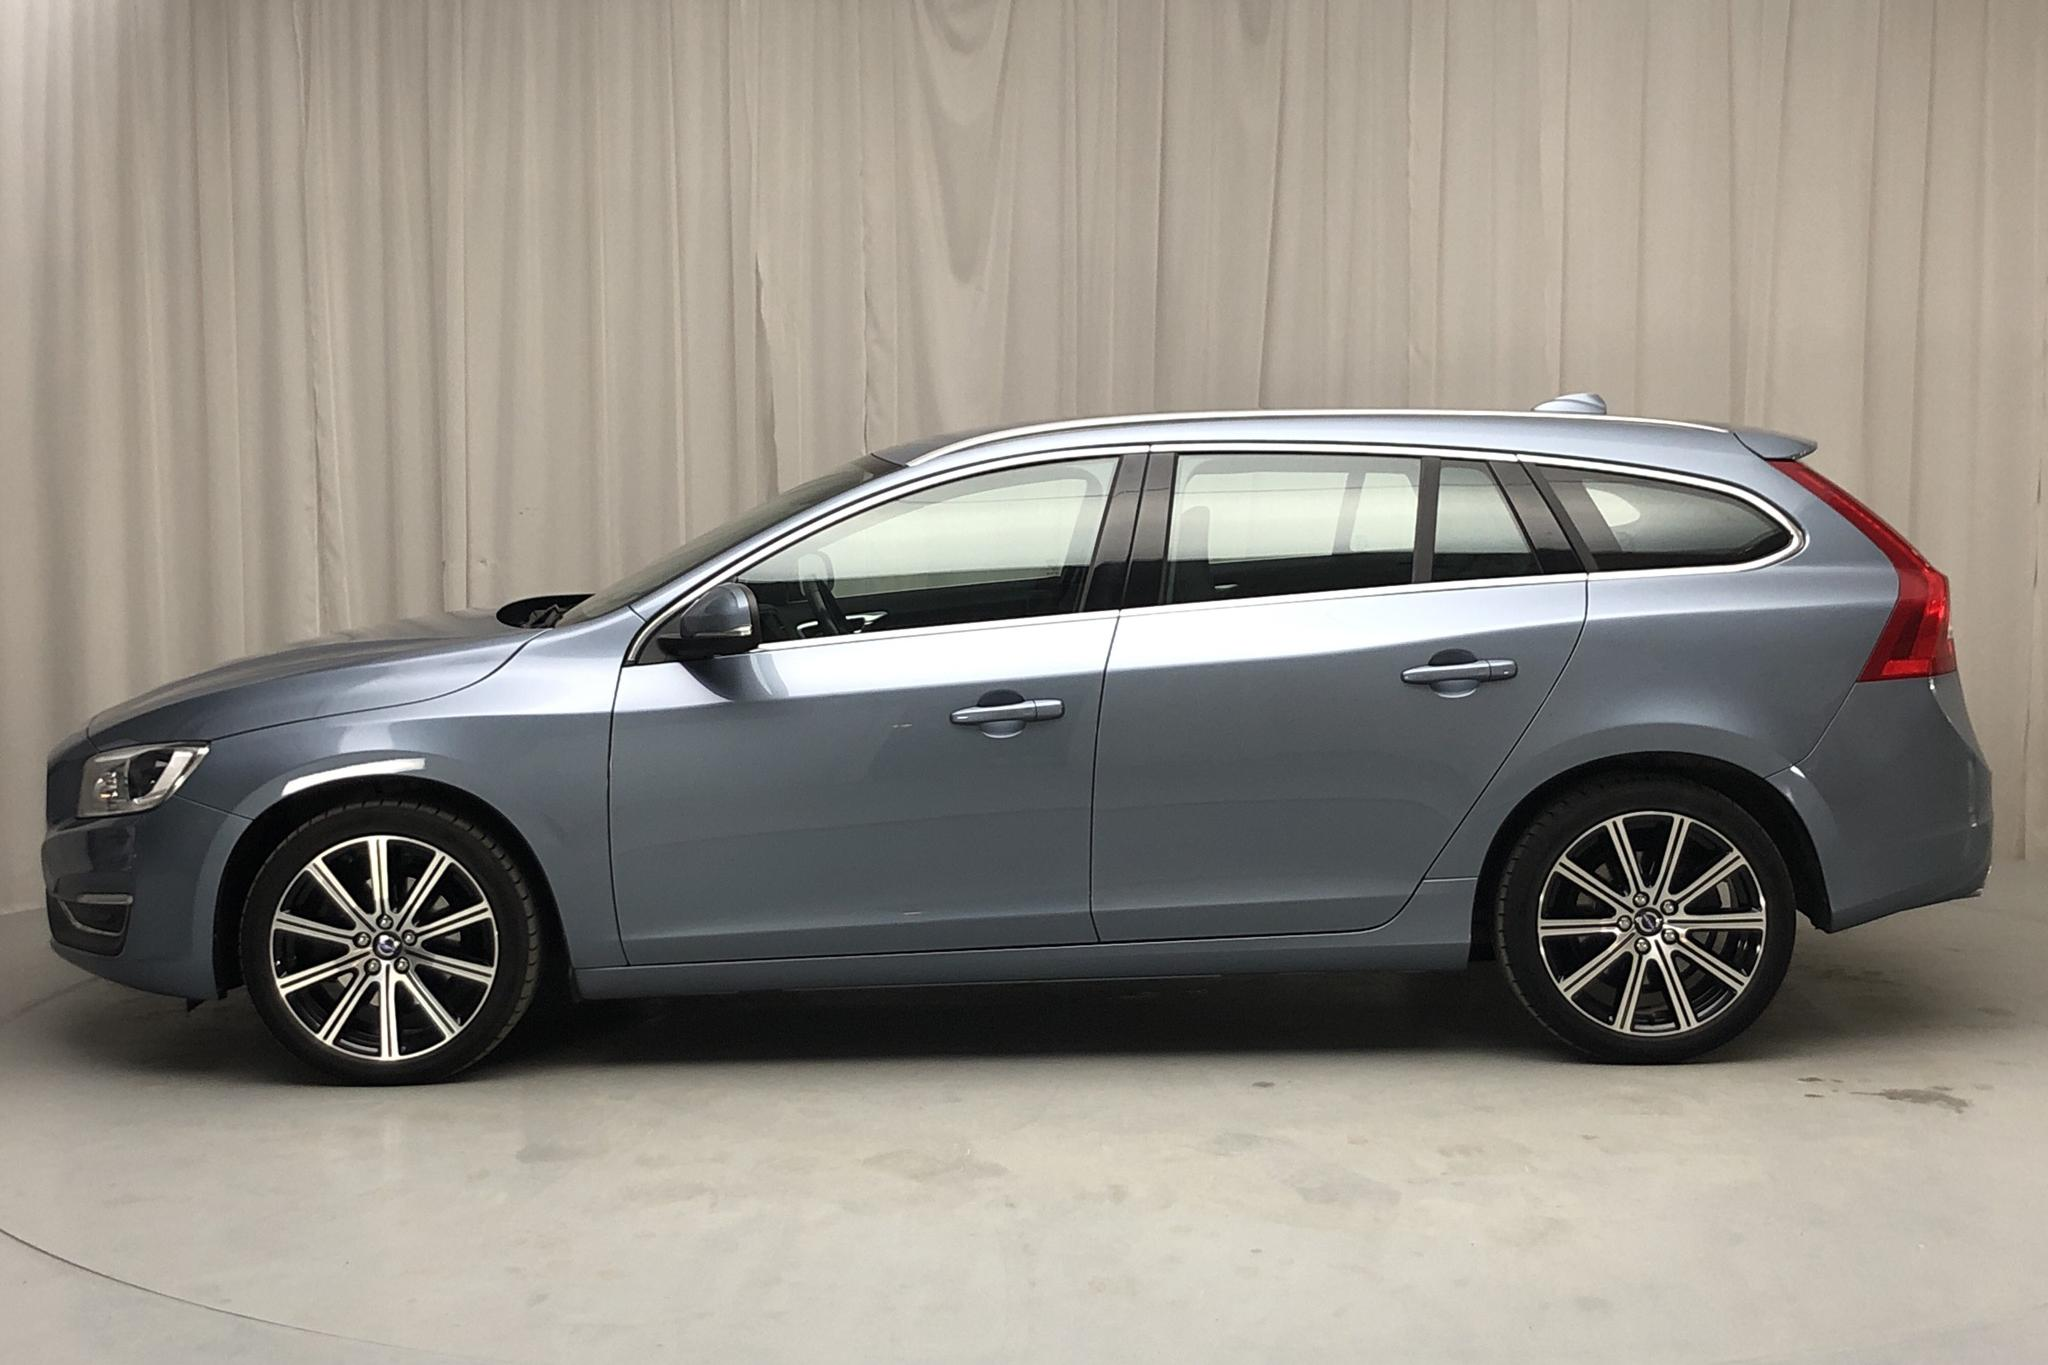 Volvo V60 D4 (190hk) - 39 910 km - Automatic - Light Blue - 2018